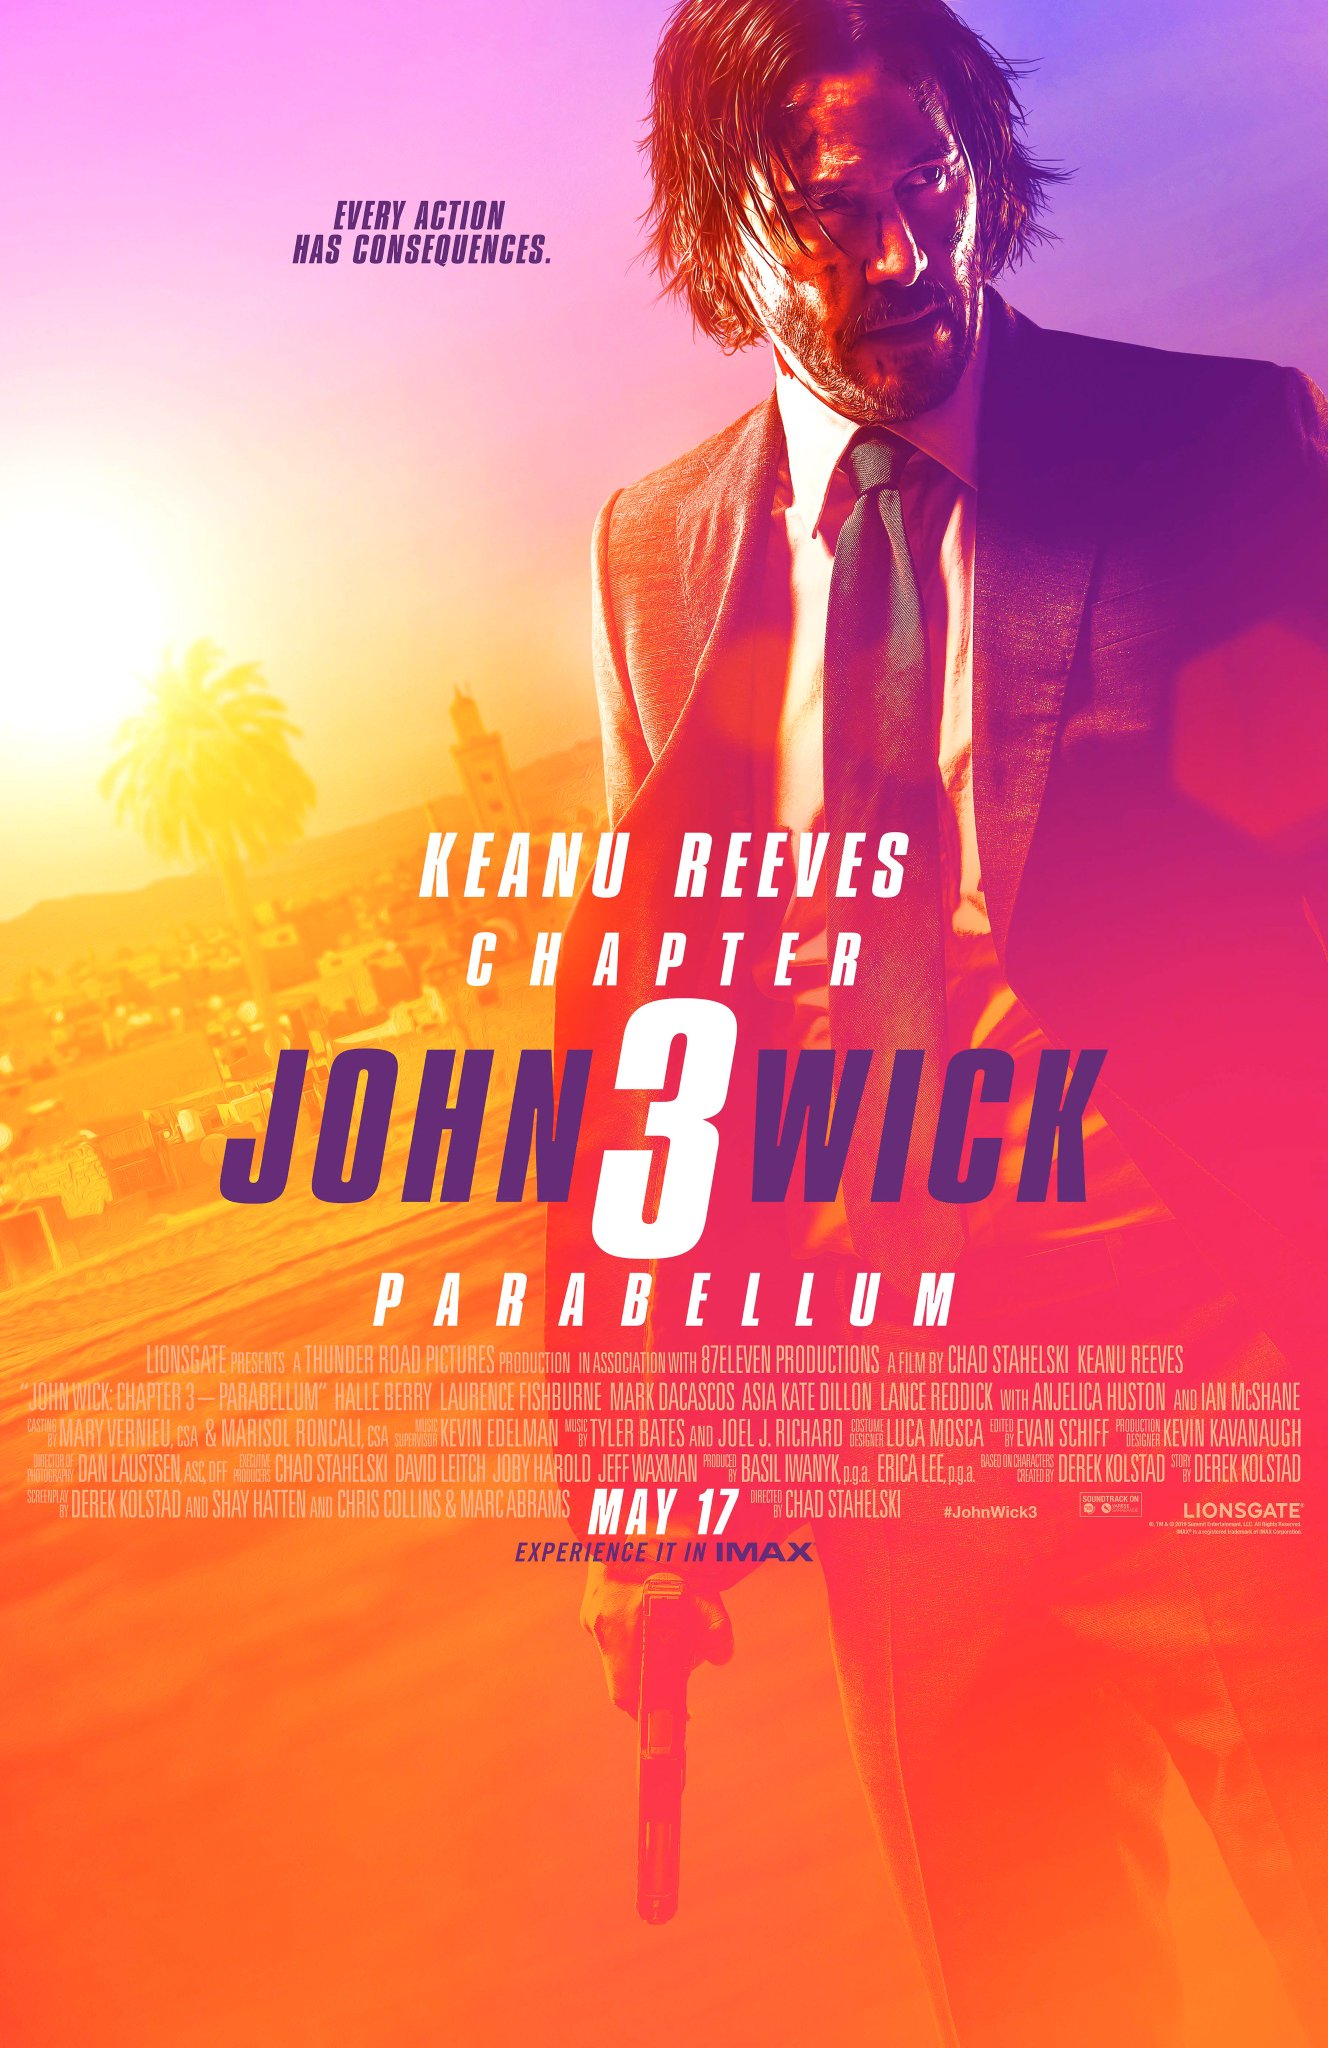 @johnwickmovie